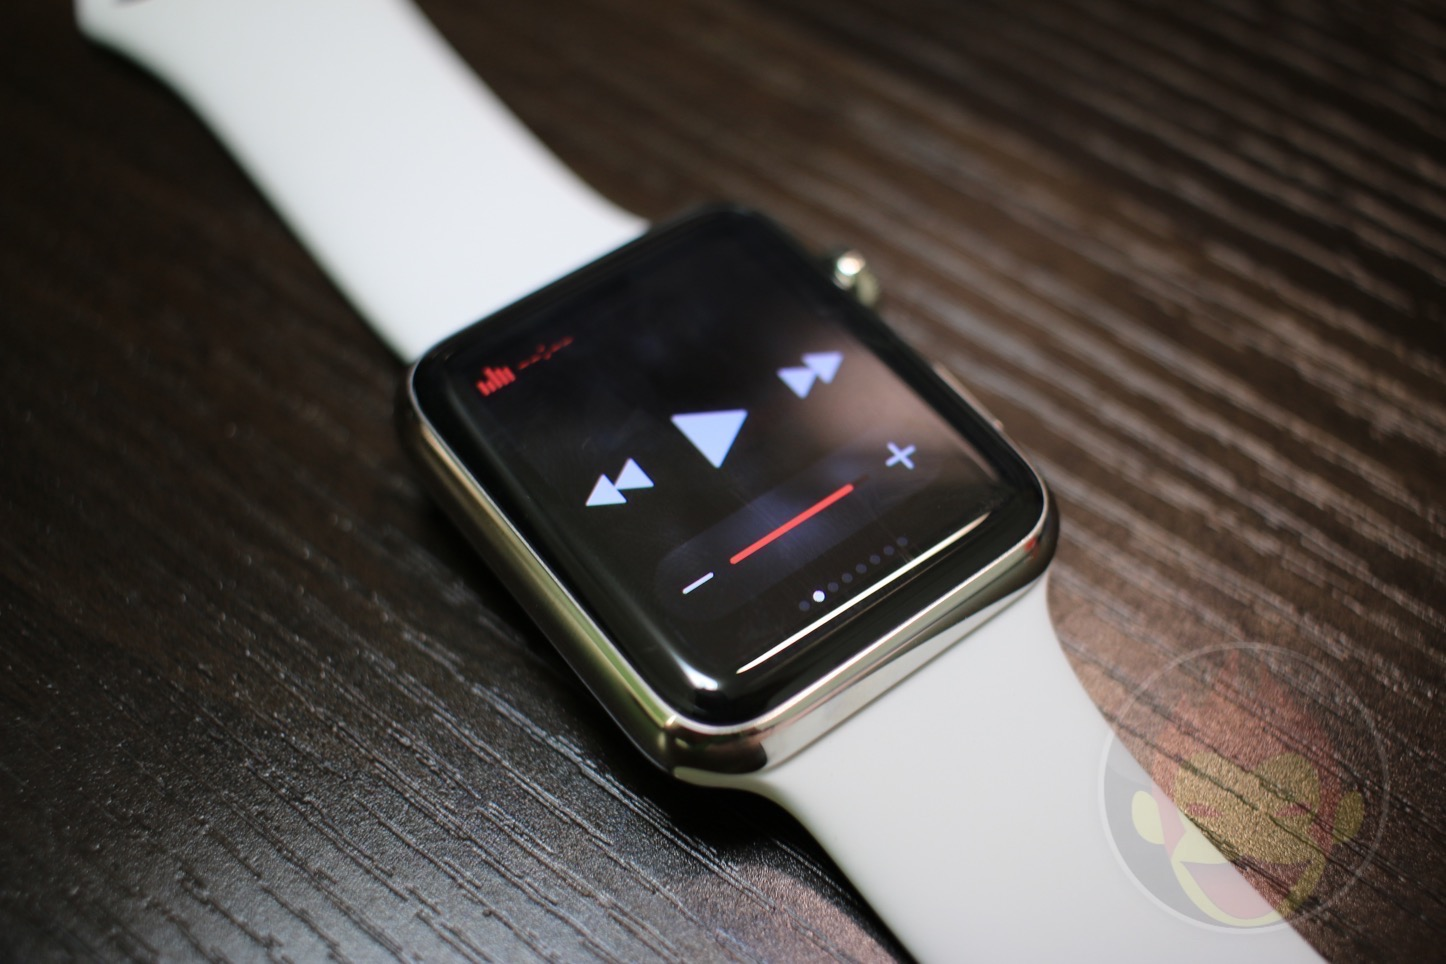 Apple-Watch-Without-iPhone-3.JPG